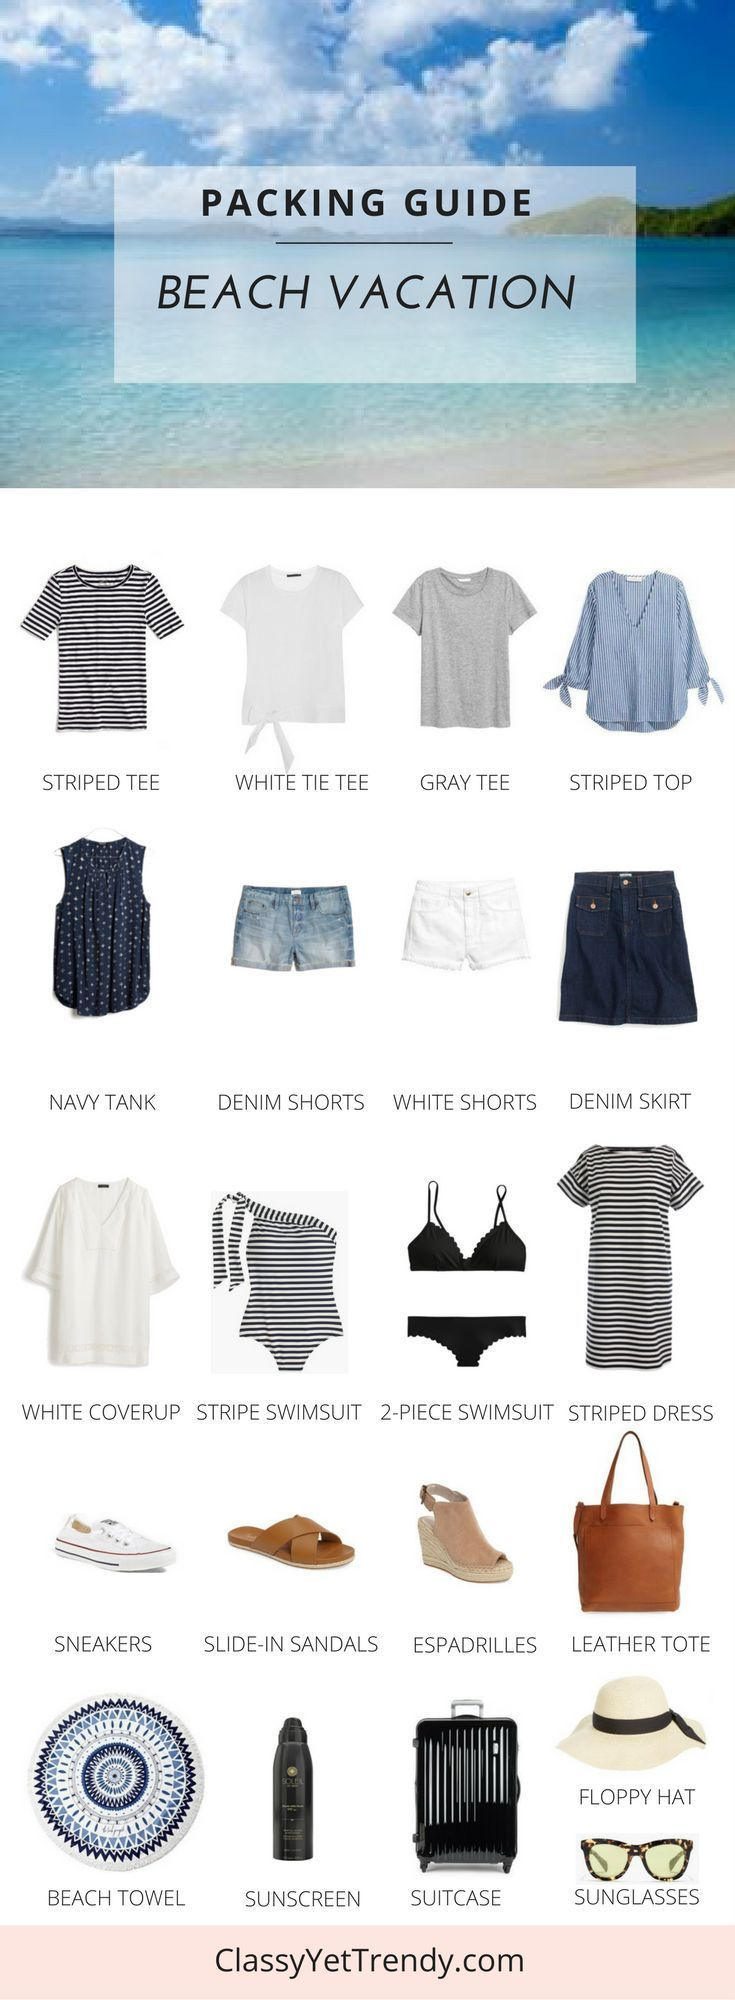 Idée et inspiration look d'été tendance 2017   Image   Description   See what to pack for Spring Break or a Summer Vacation, with this packing guide and a few outfit ideas! You may already have these in your capsule wardrobe / closet: denim shorts, white shorts, striped tee, gray tee,...